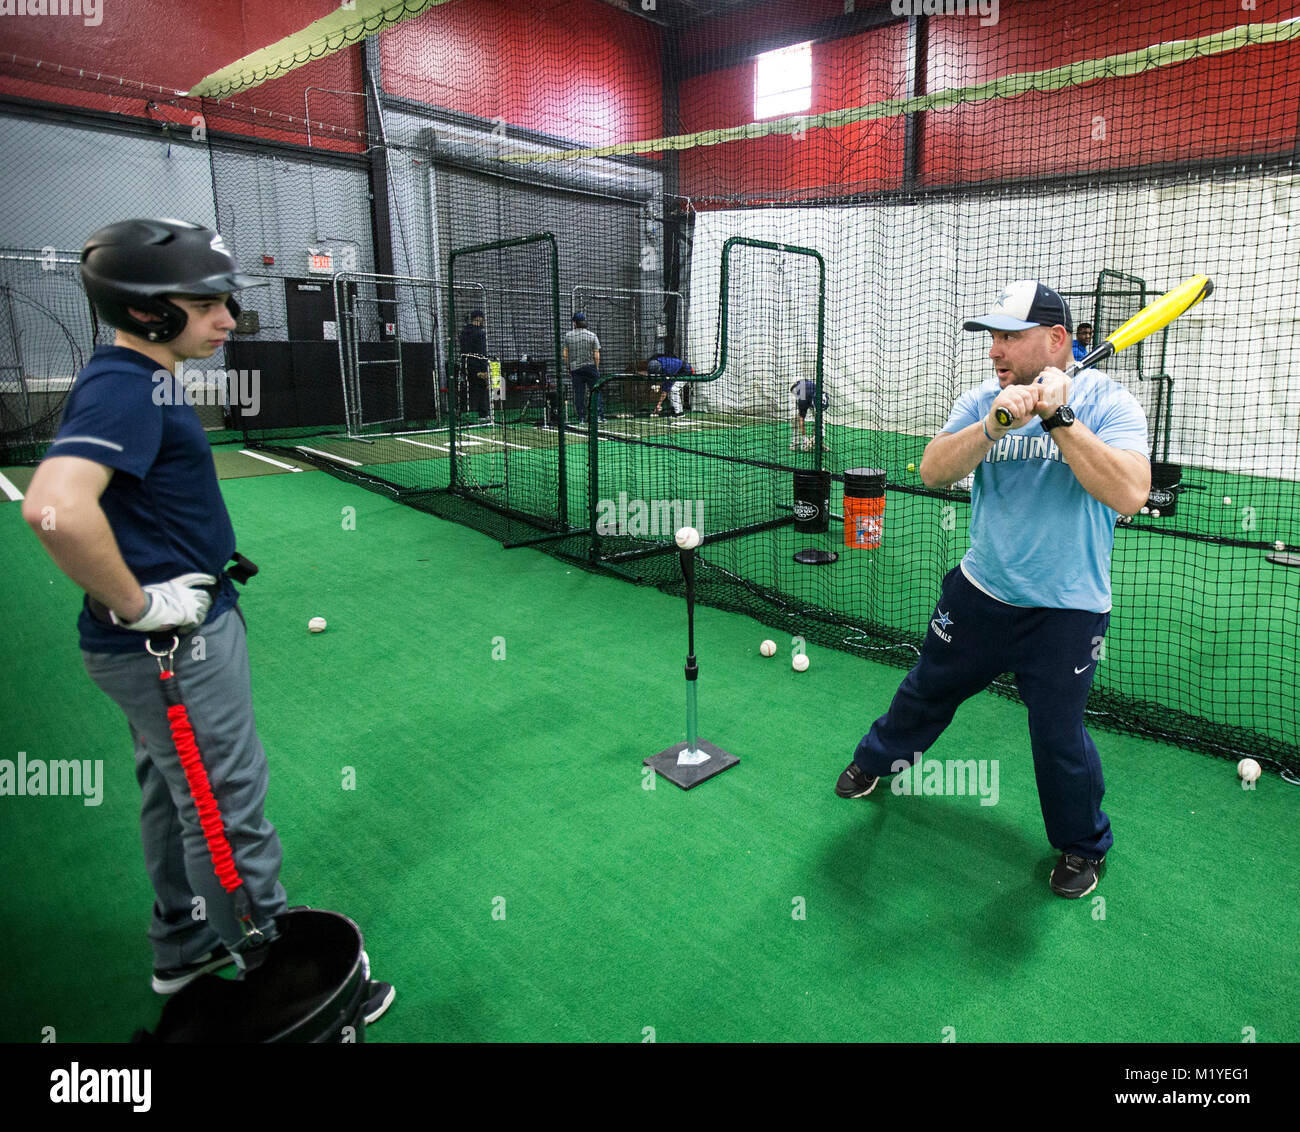 Baseball coach demonstrating proper hitting technique at an indoor training facility in New Jersey - Stock Image